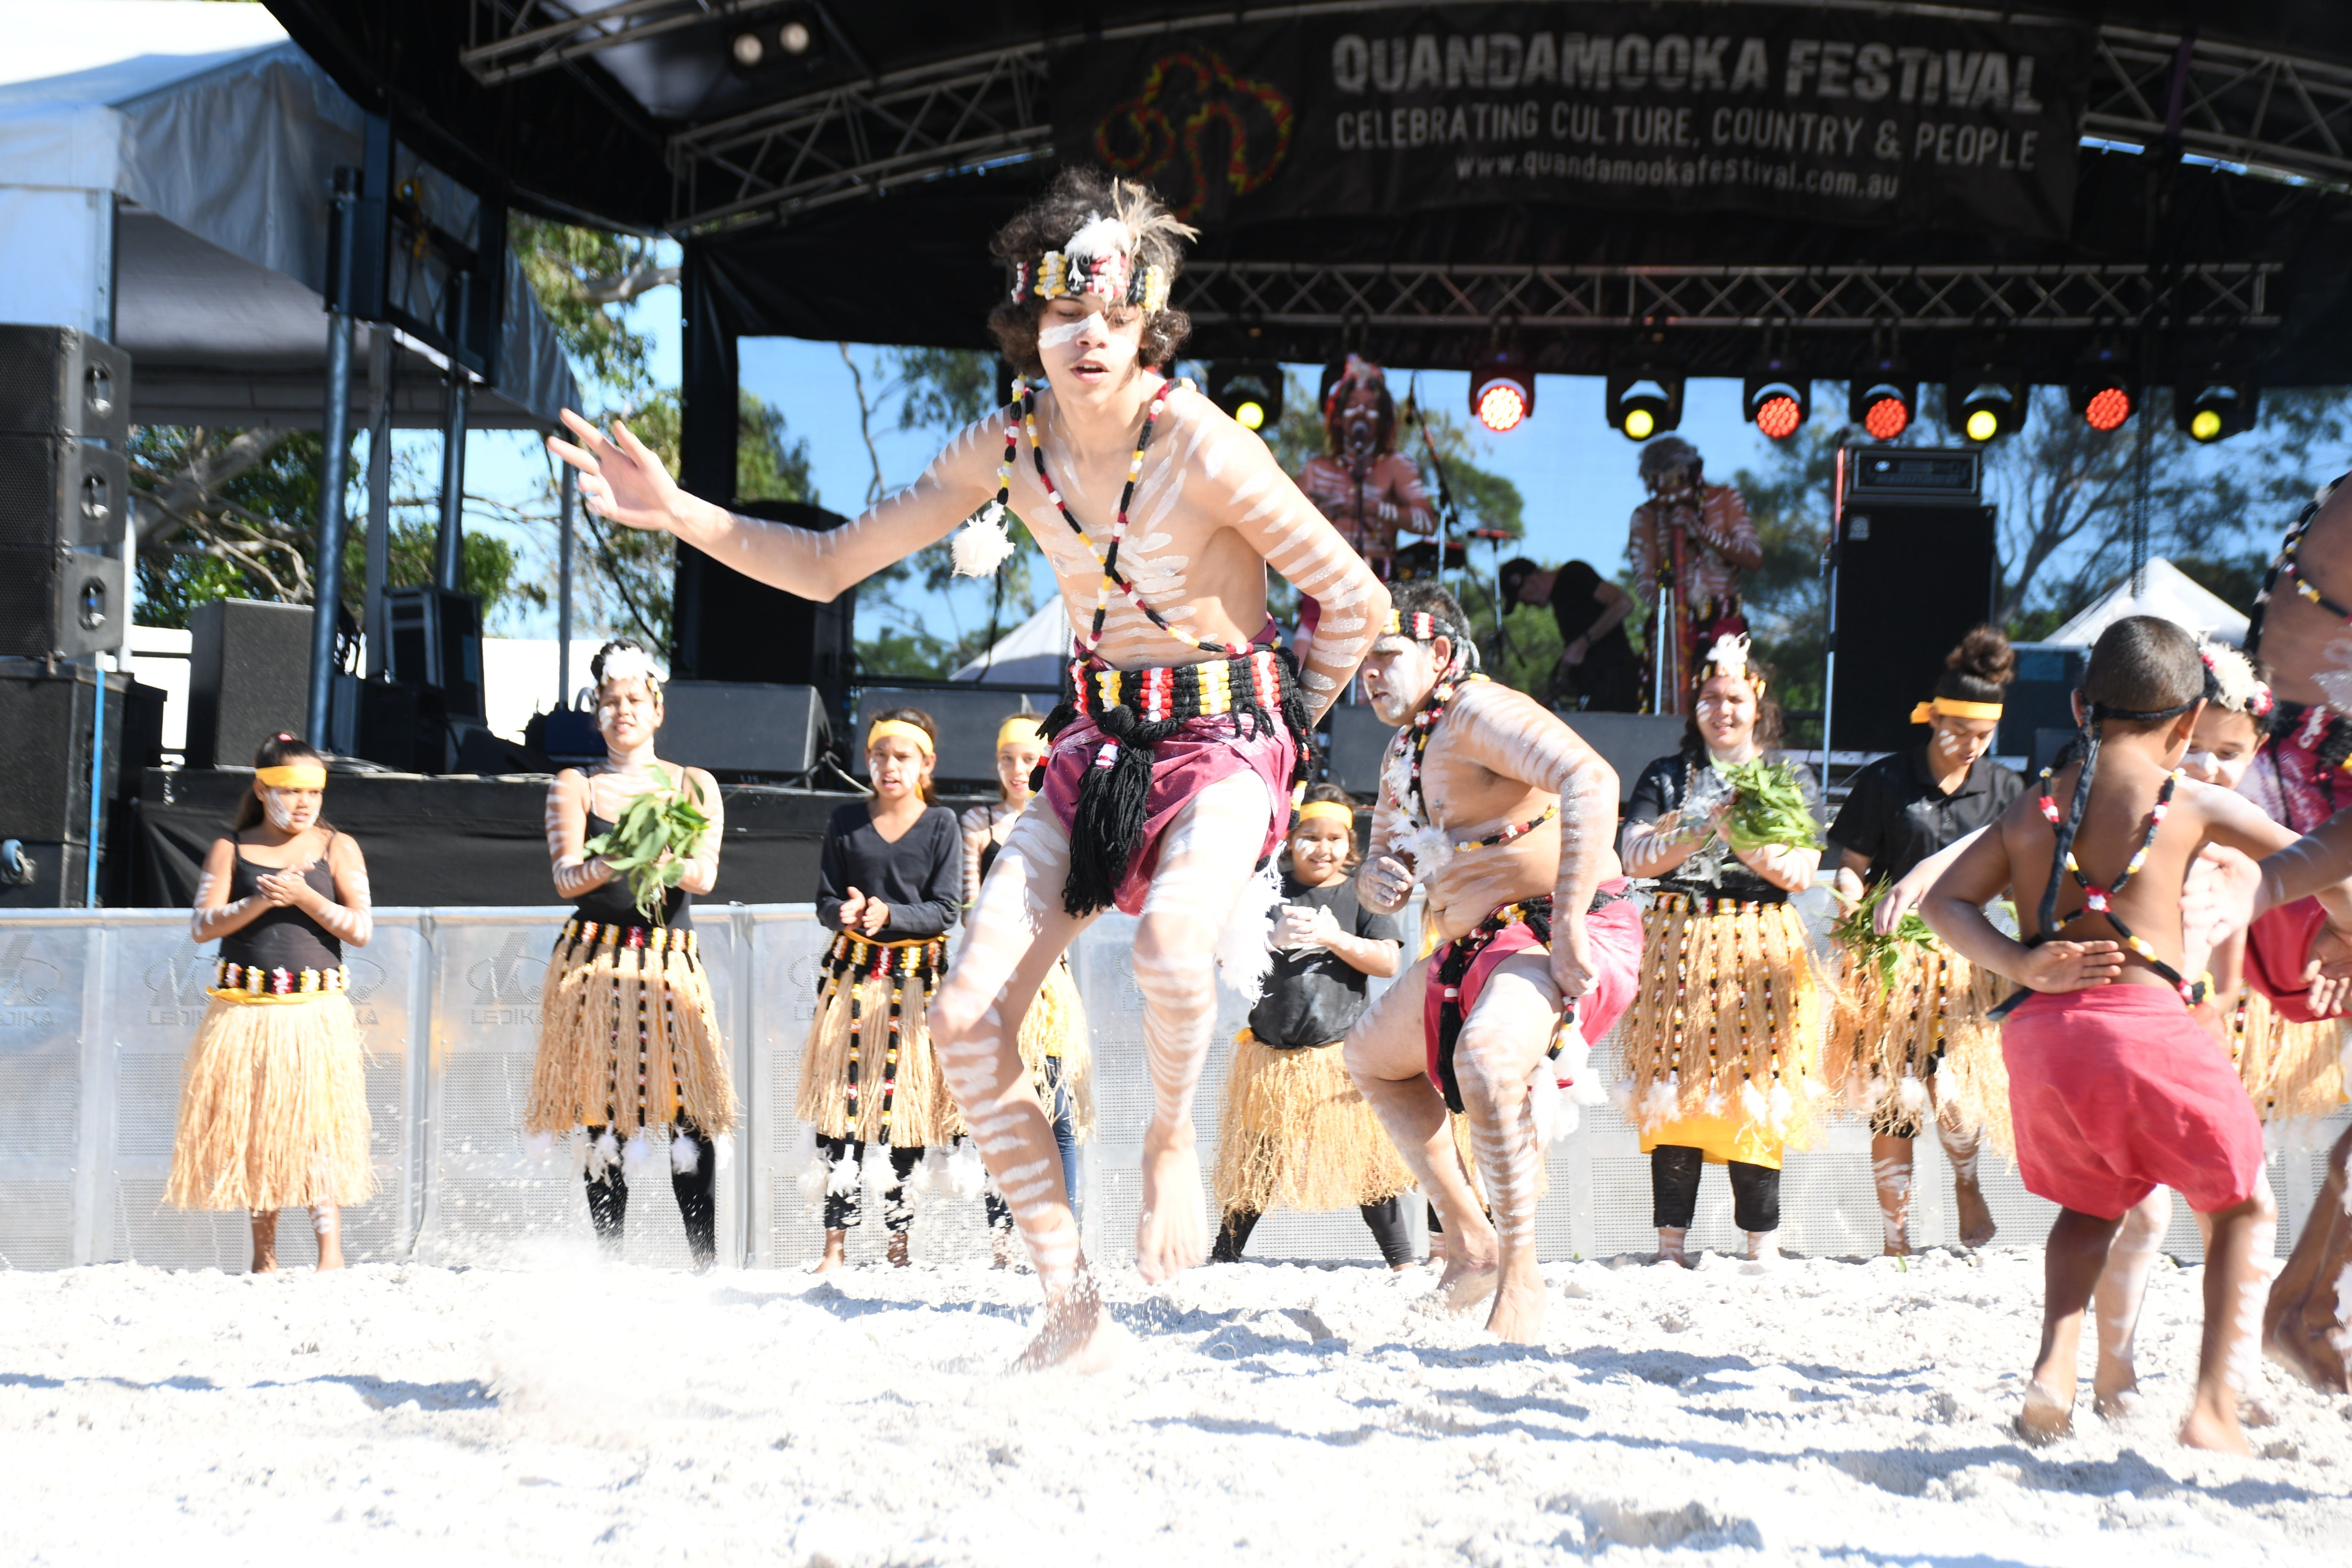 Quandamooka Festival 2021 - Port Augusta Accommodation